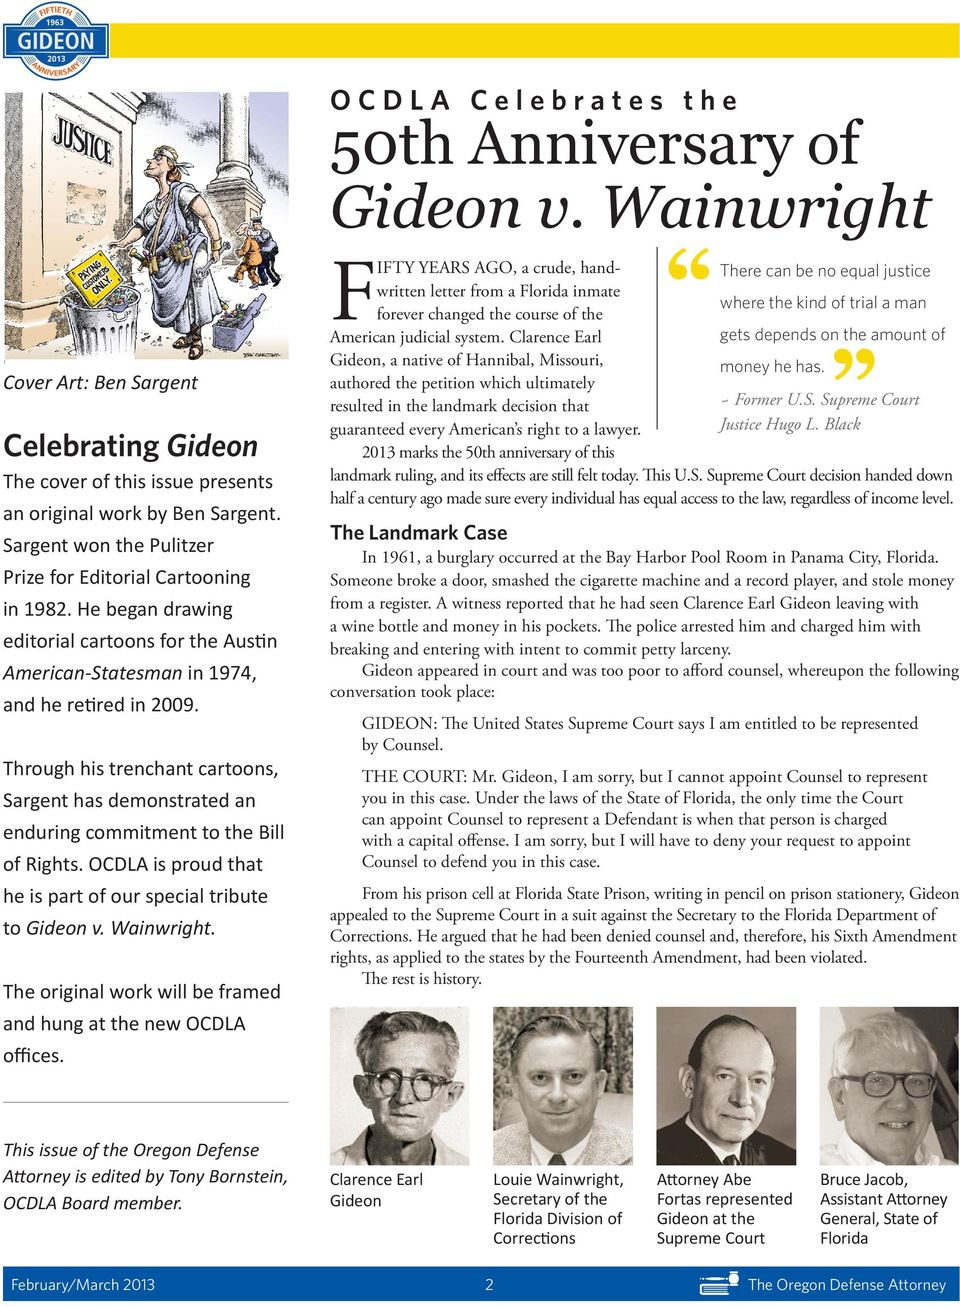 Through his trenchant cartoons, Sargent has demonstrated an enduring commitment to the Bill of Rights. OCDLA is proud that he is part of our special tribute to Gideon v. Wainwright.